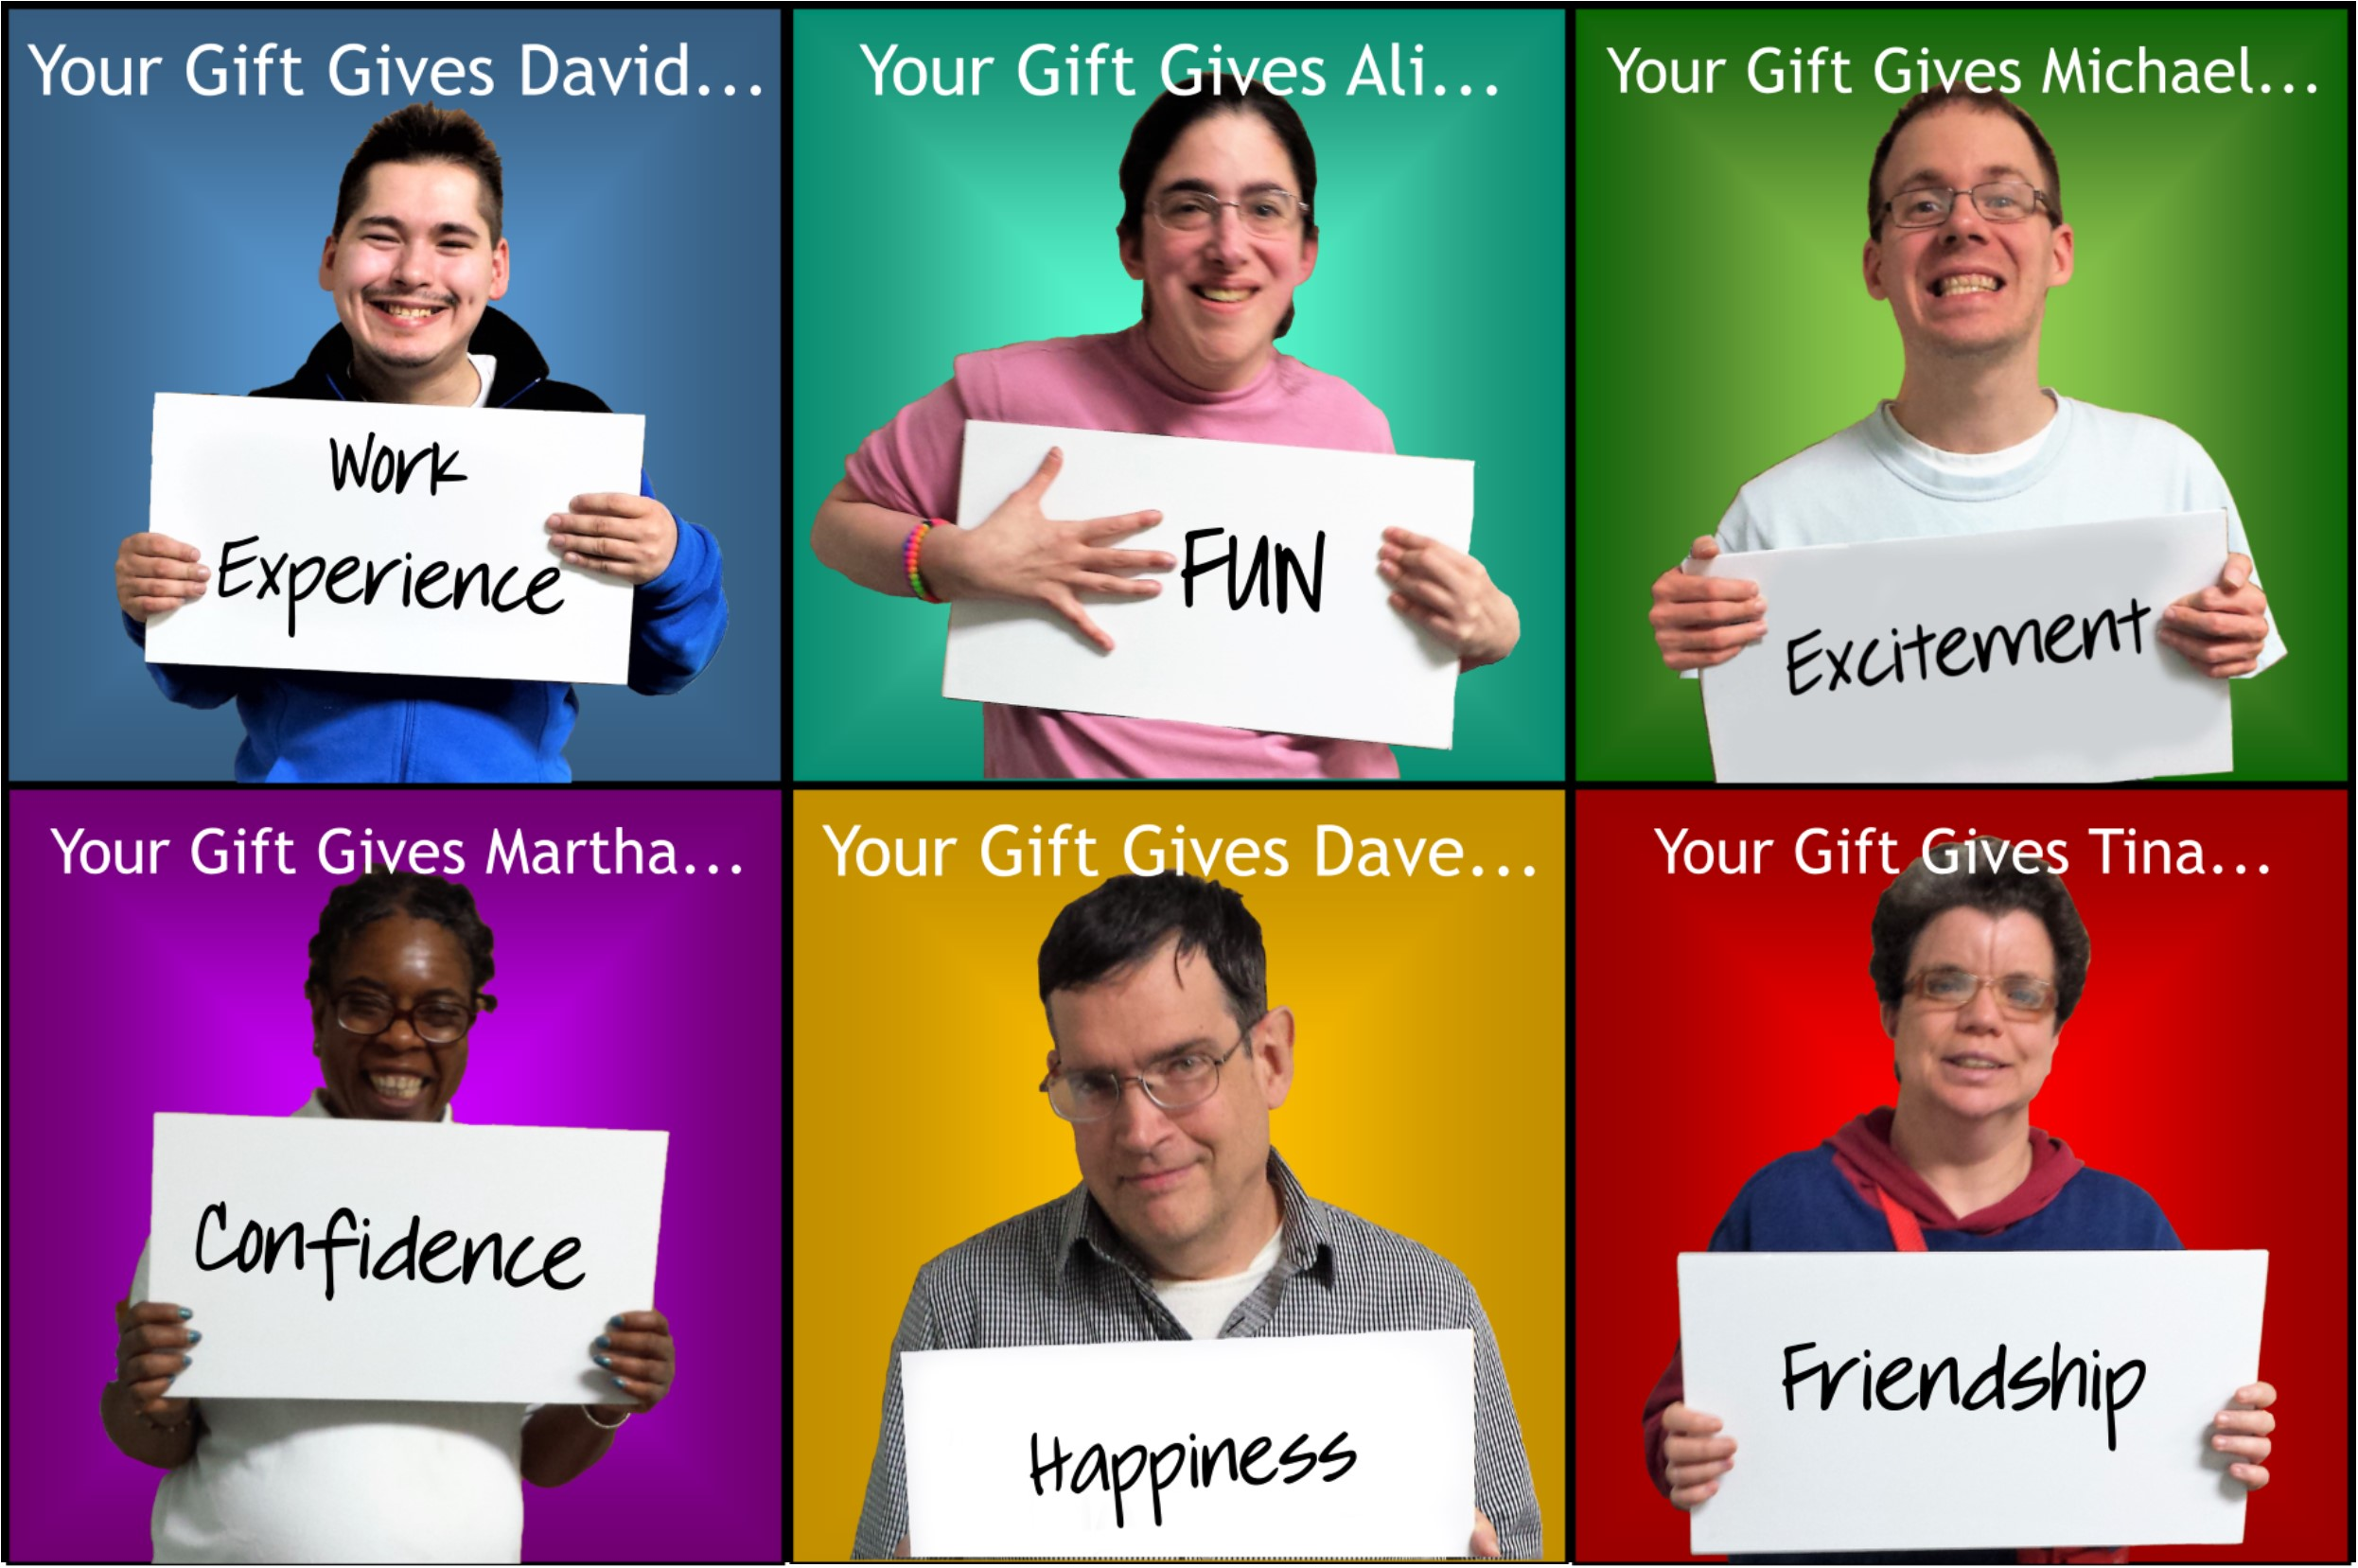 Give a Gift that Makes a Difference